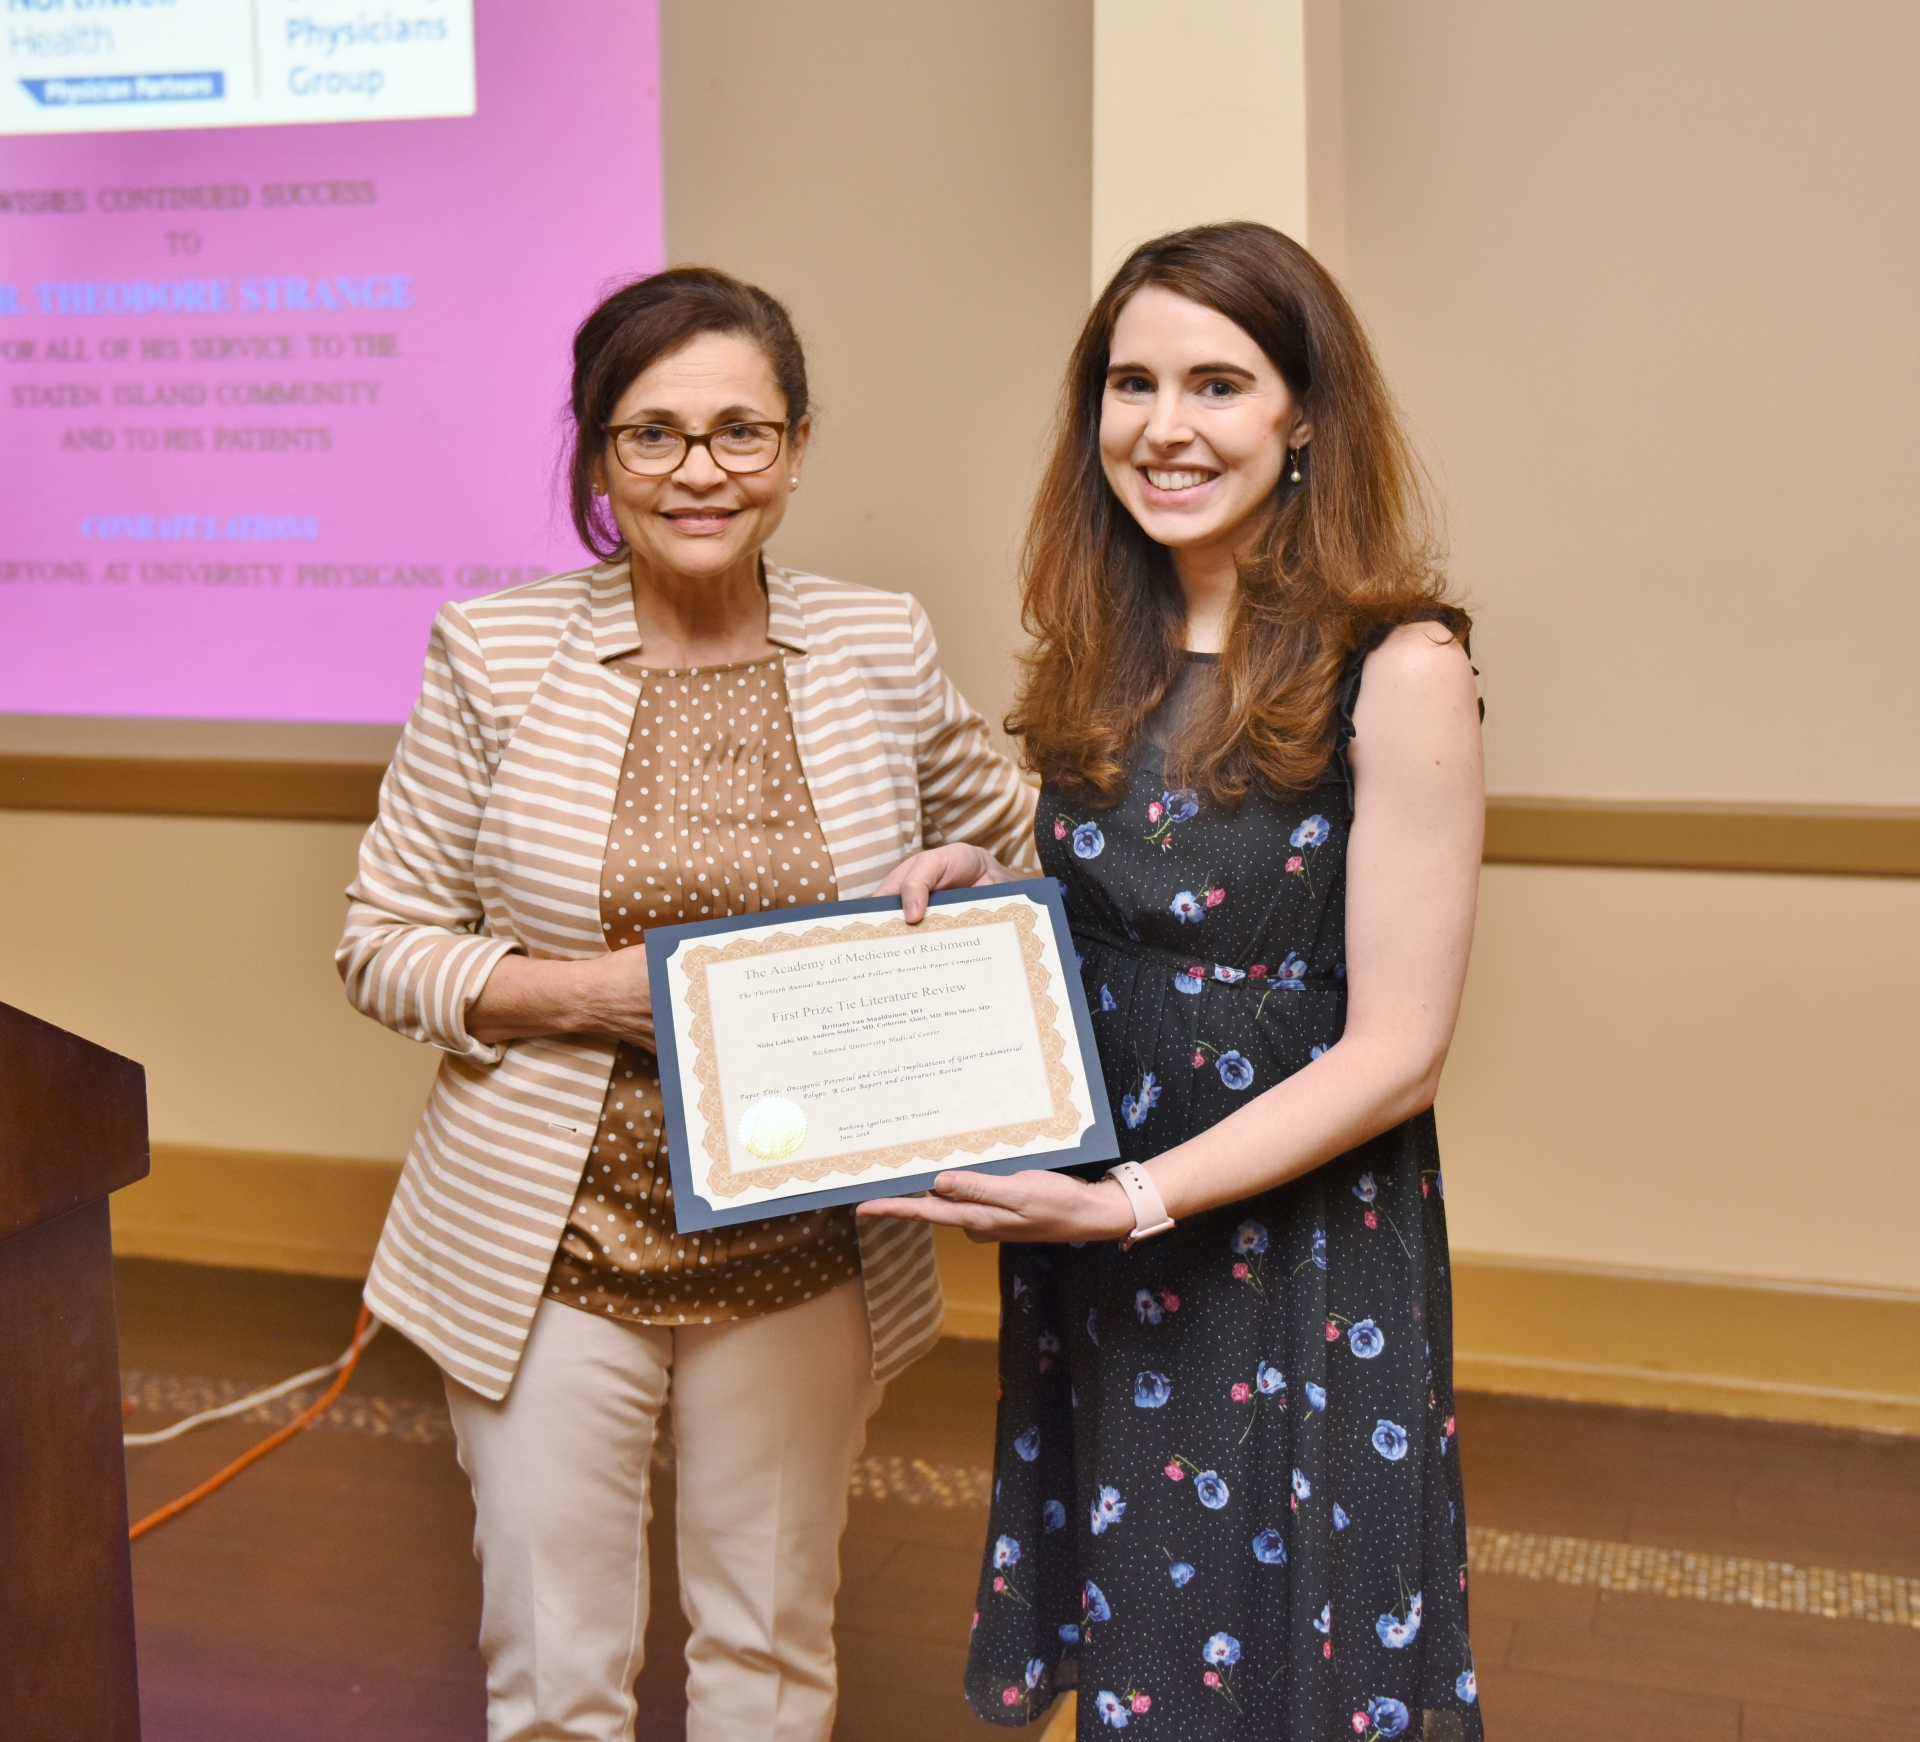 Residents Research Competition and Awards Dinner